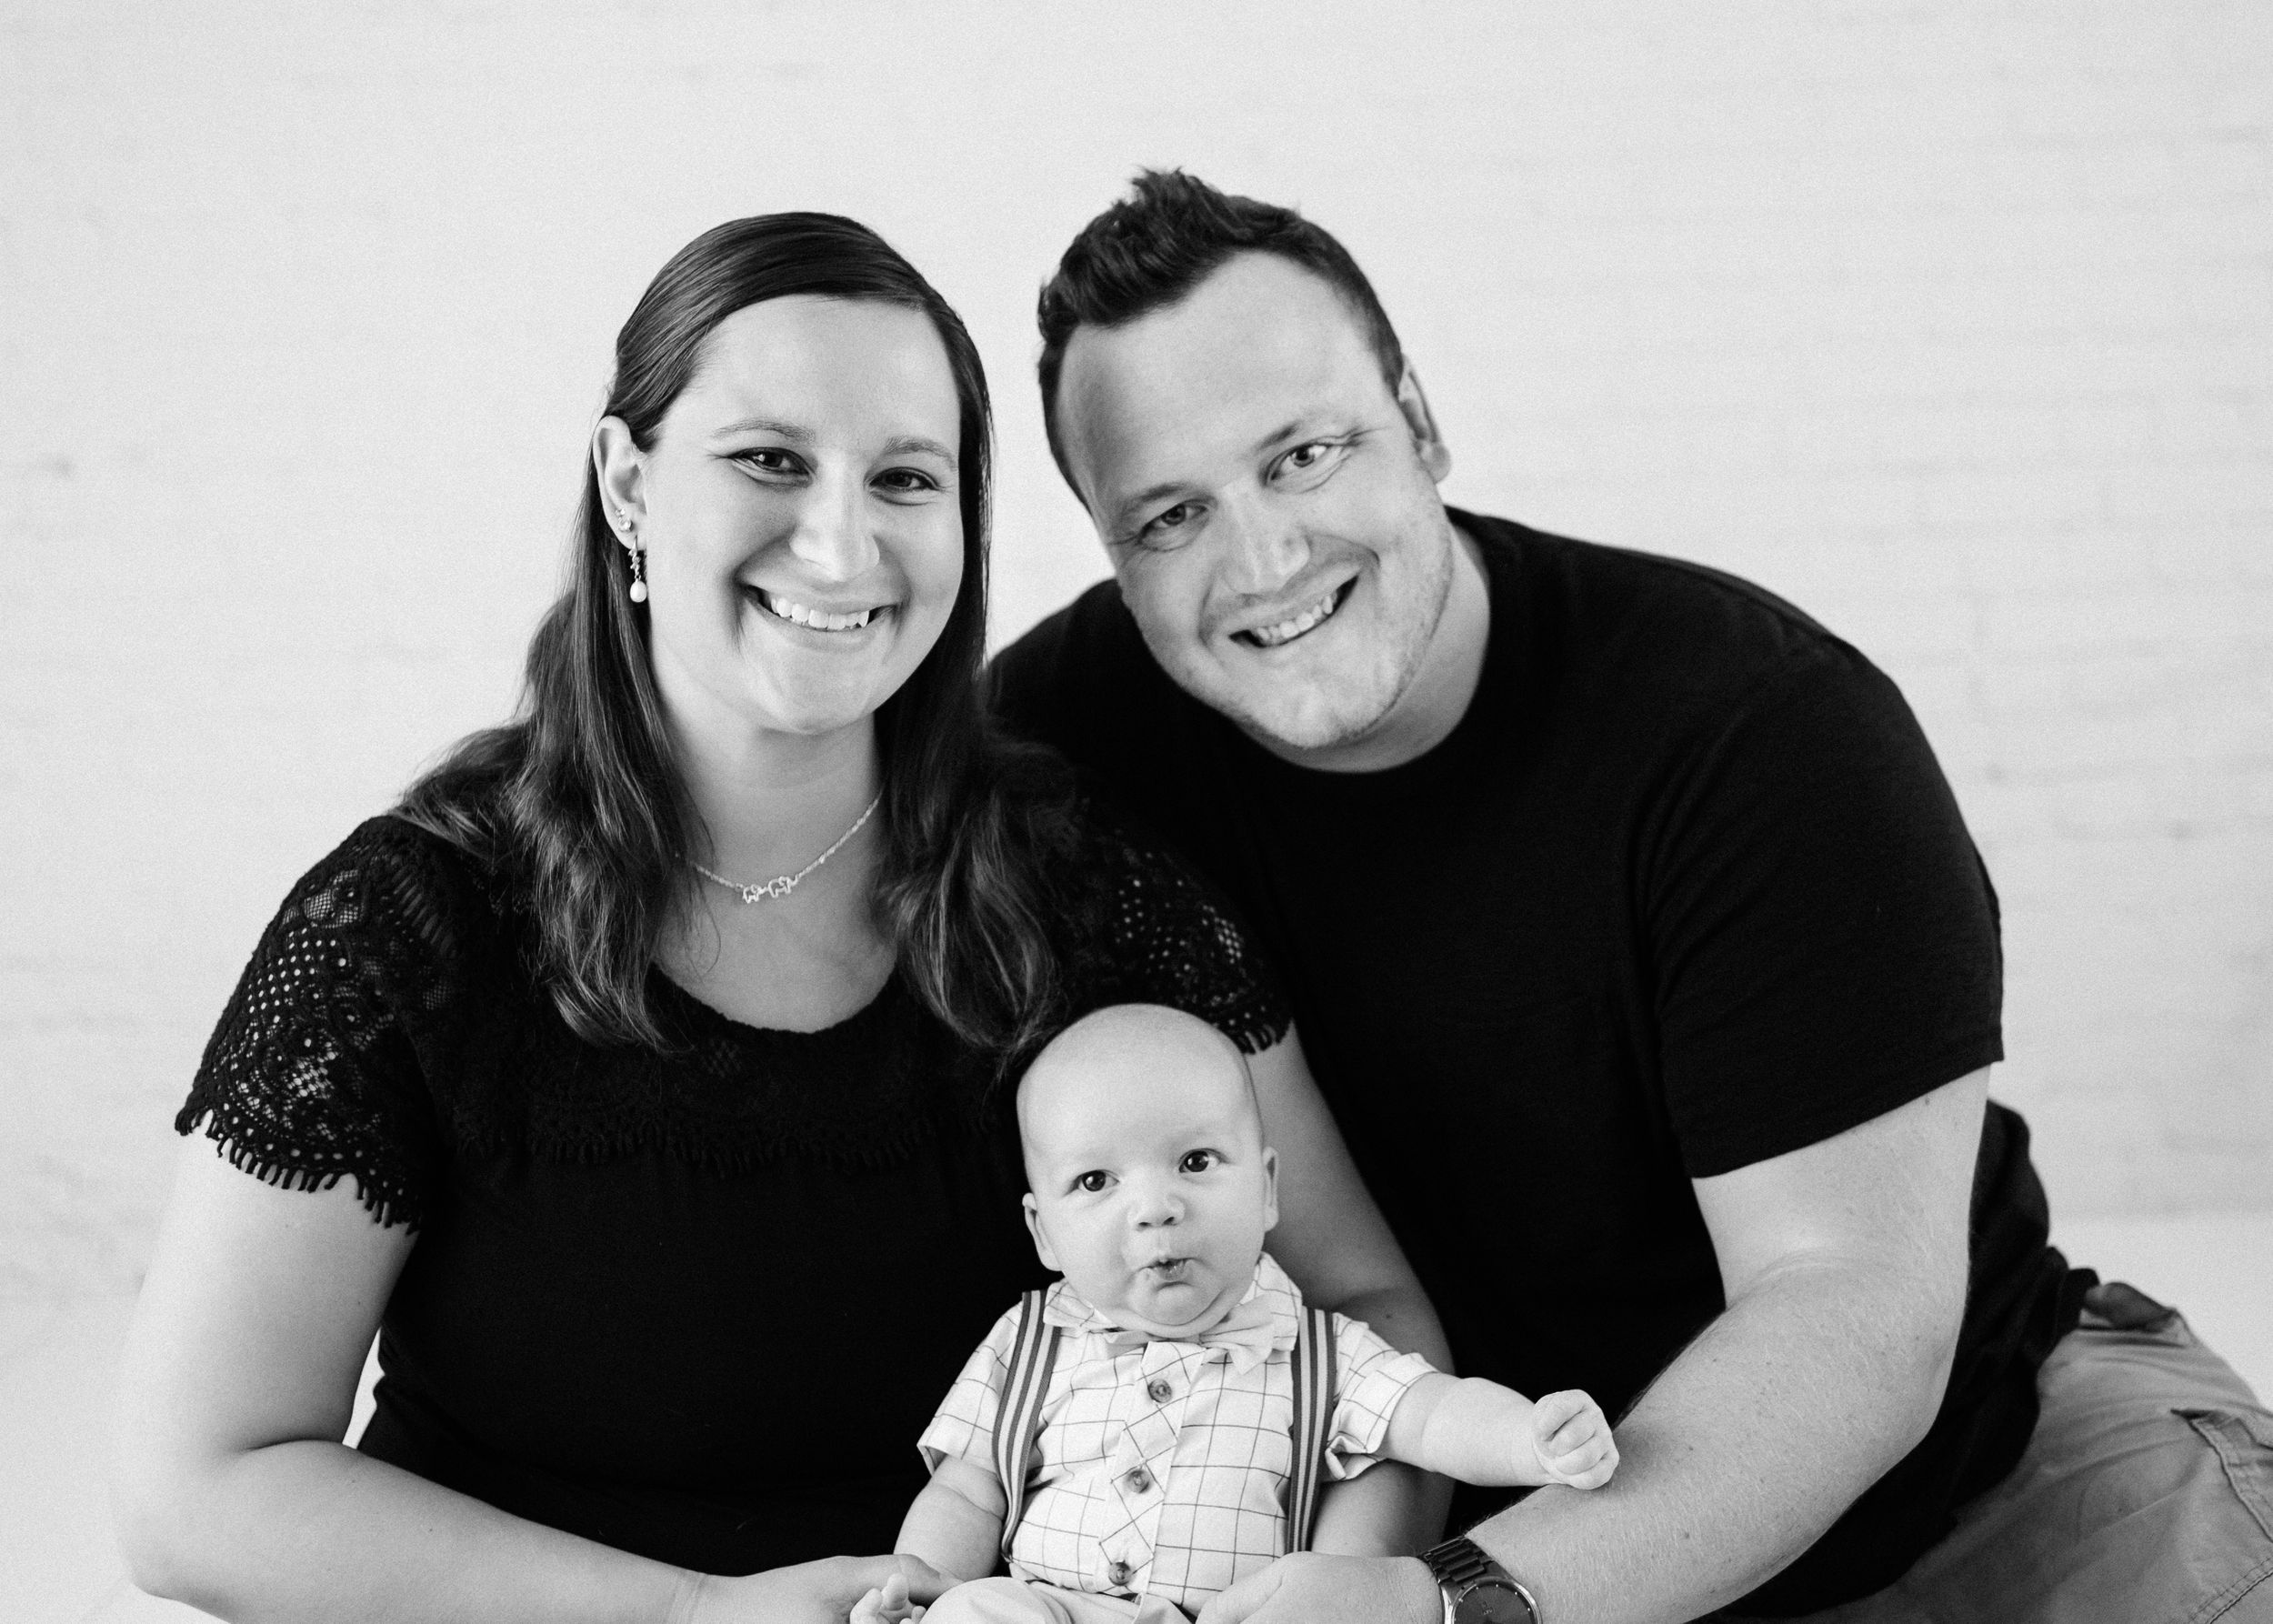 McHenry County Newborn Photographer | McHenry County Maternity Photographer | McHenry County Family Photographer